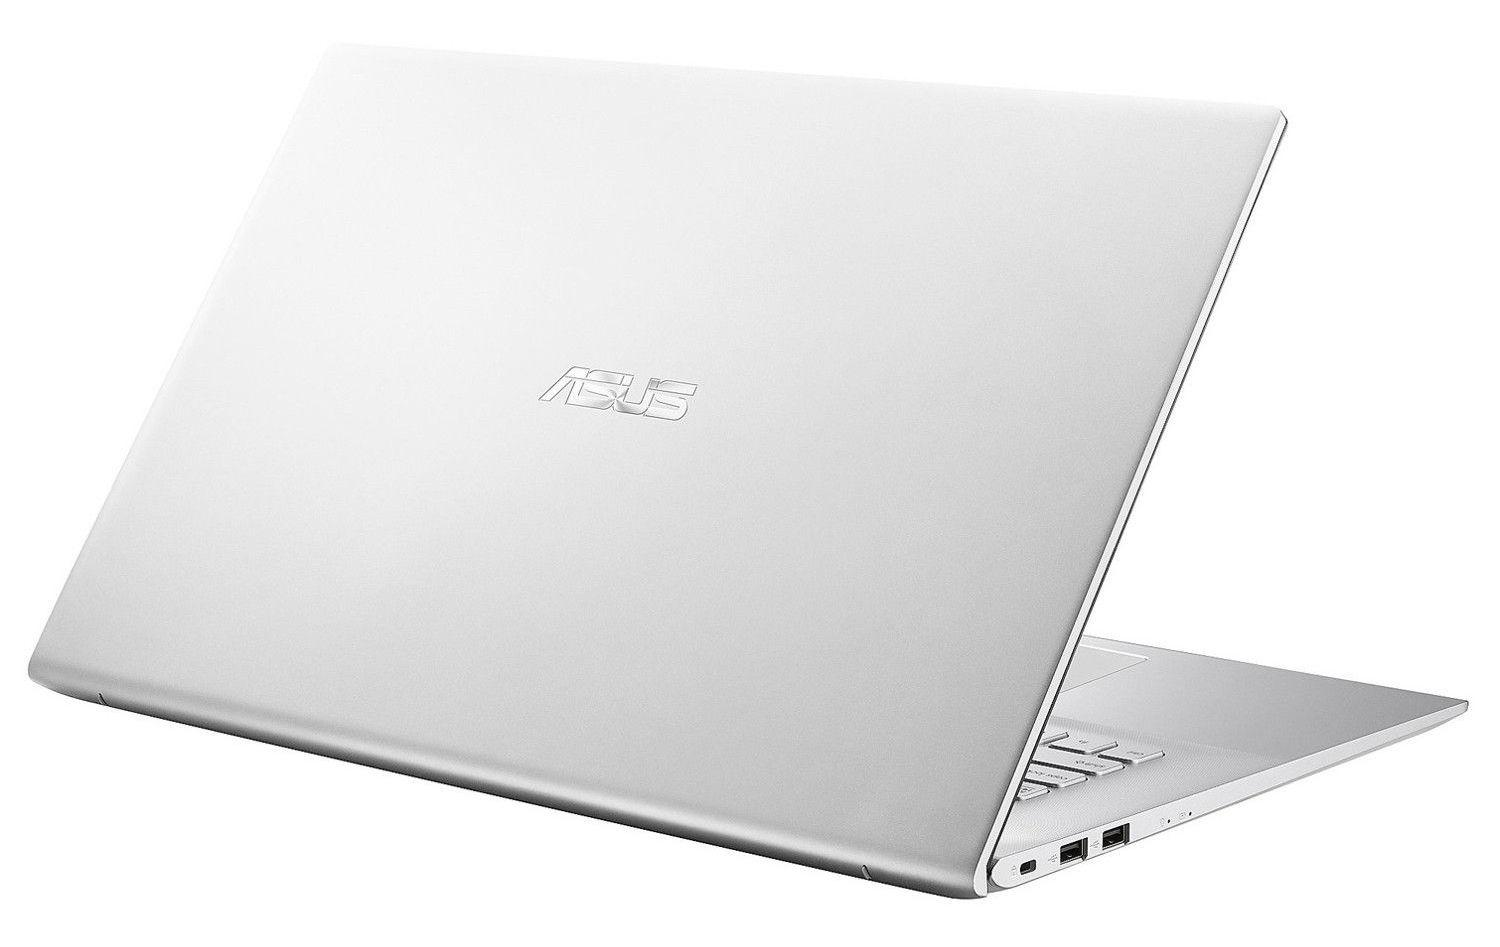 Ordinateur portable Asus VivoBook X712FB-AU121T Argent - SSD, MX110 - photo 5